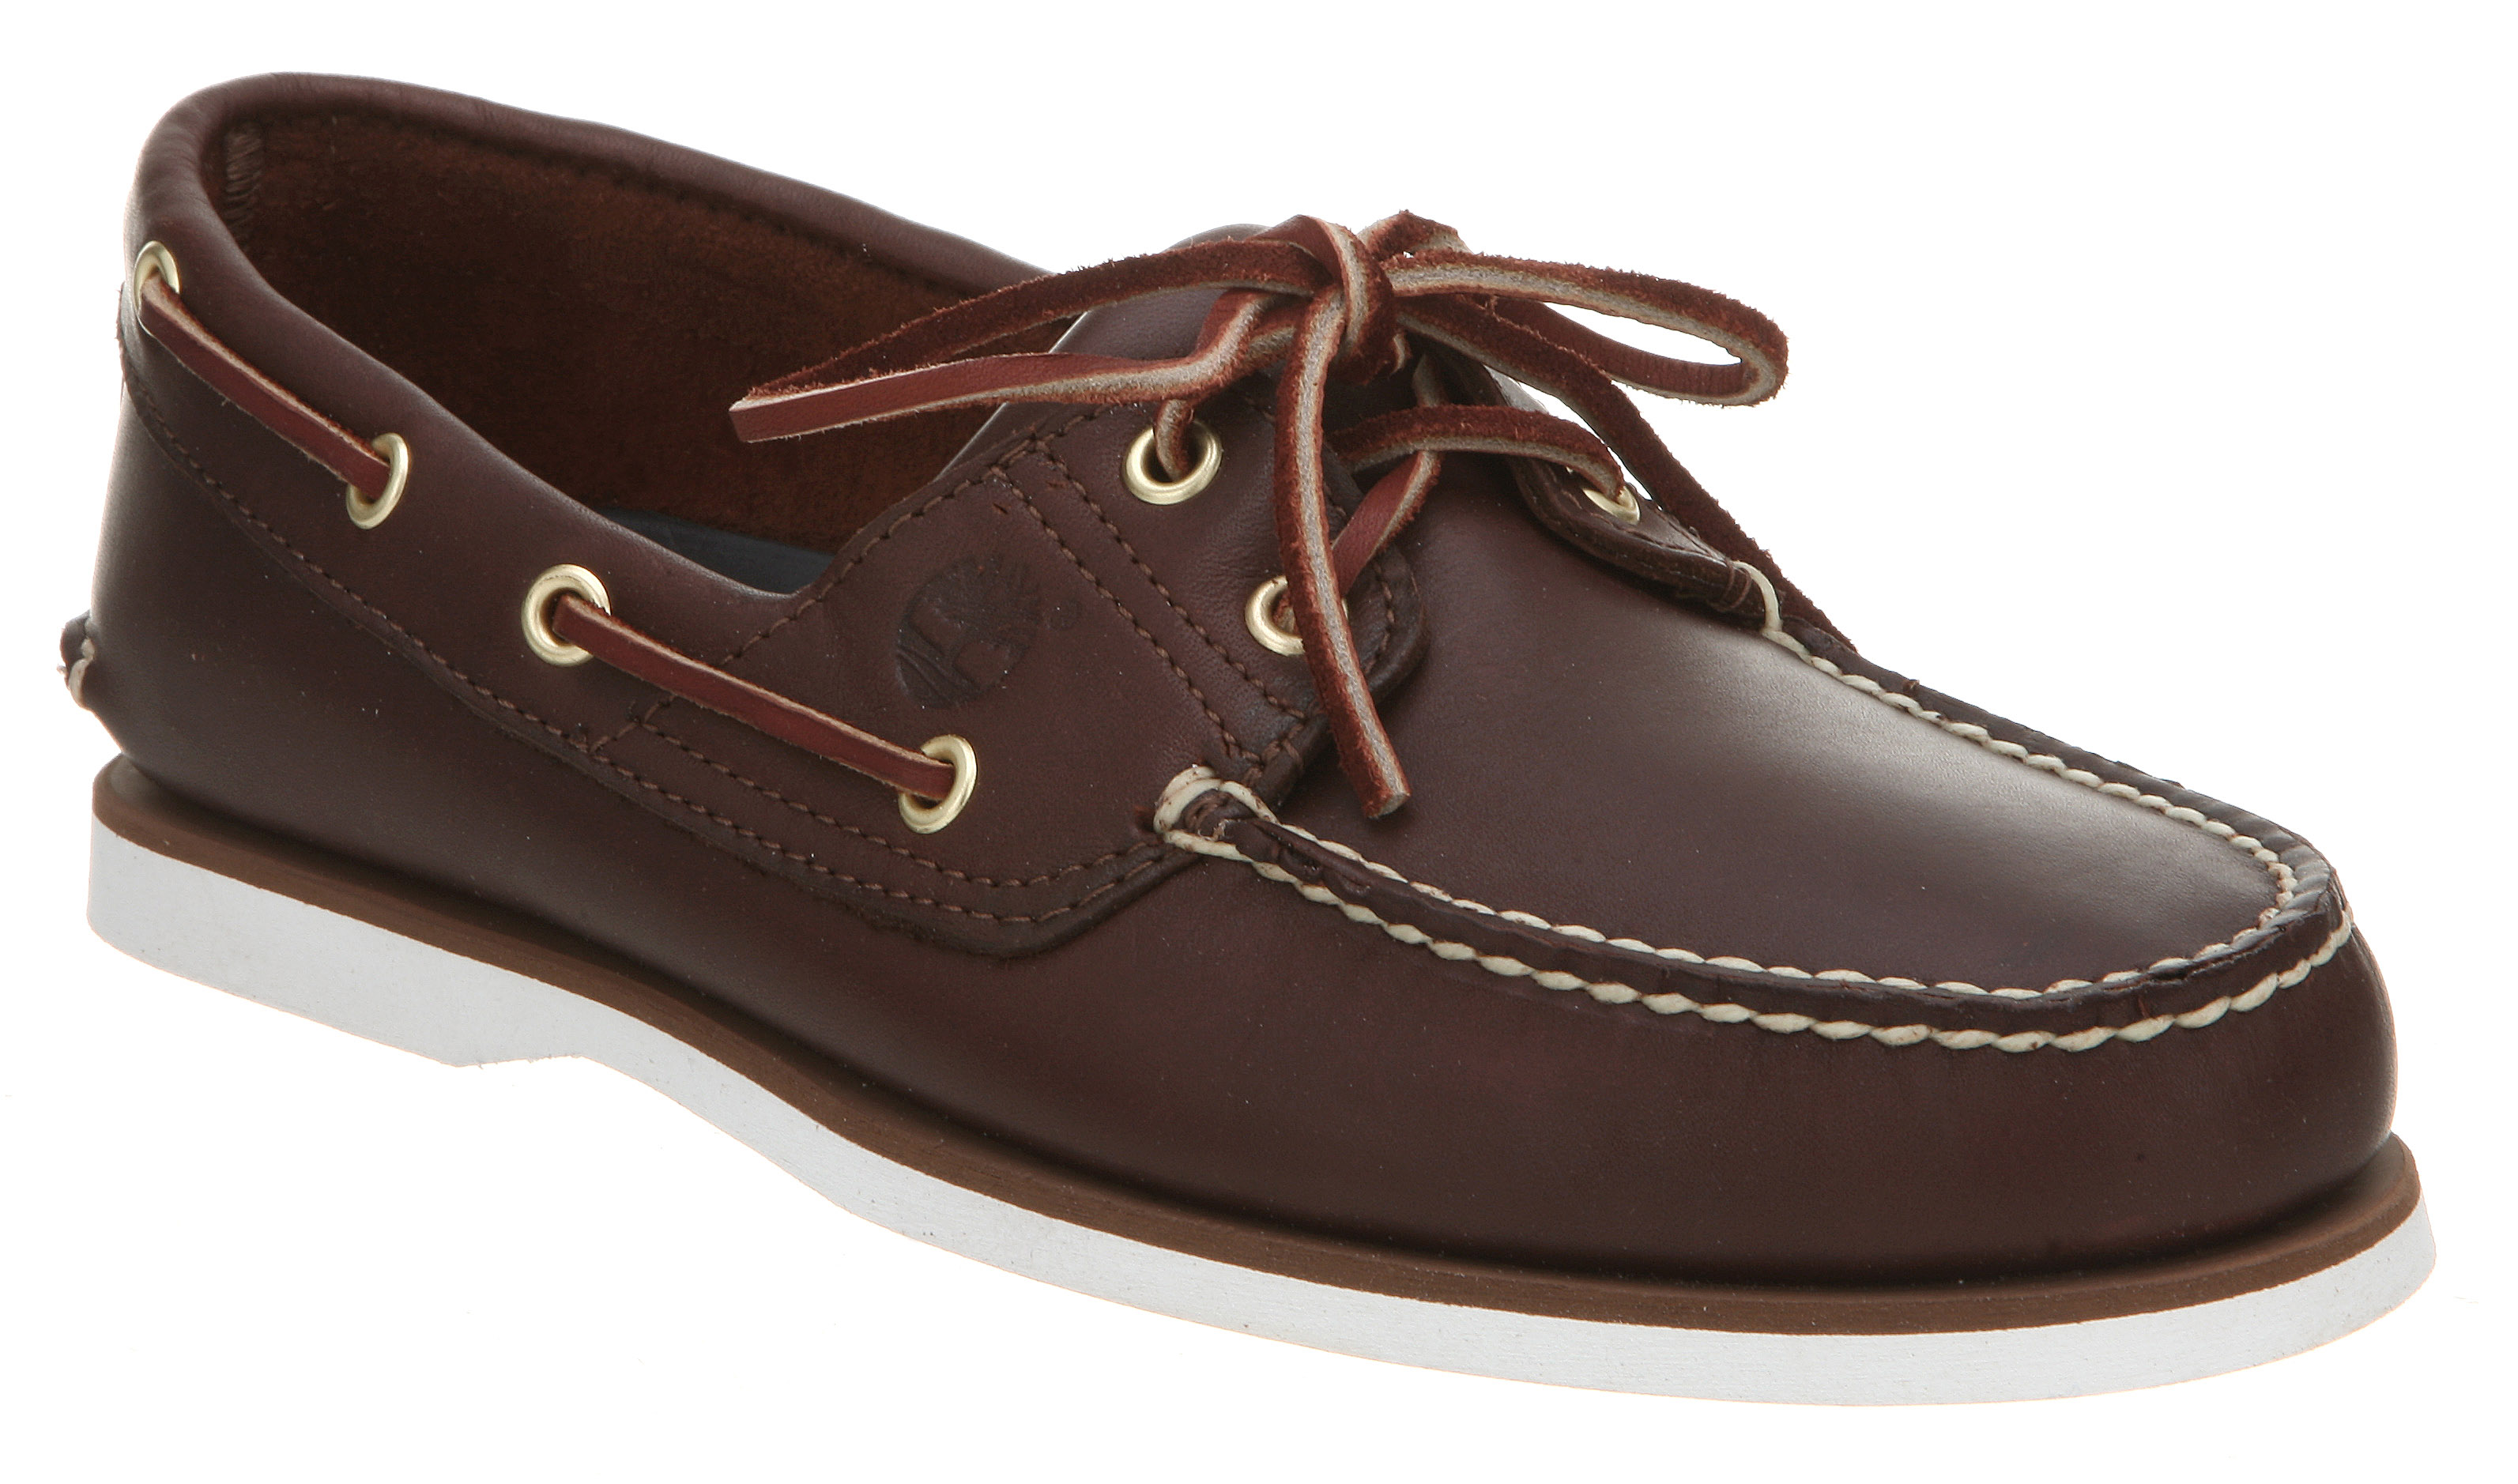 Sperry Dark Brown Leather Boat Shoes